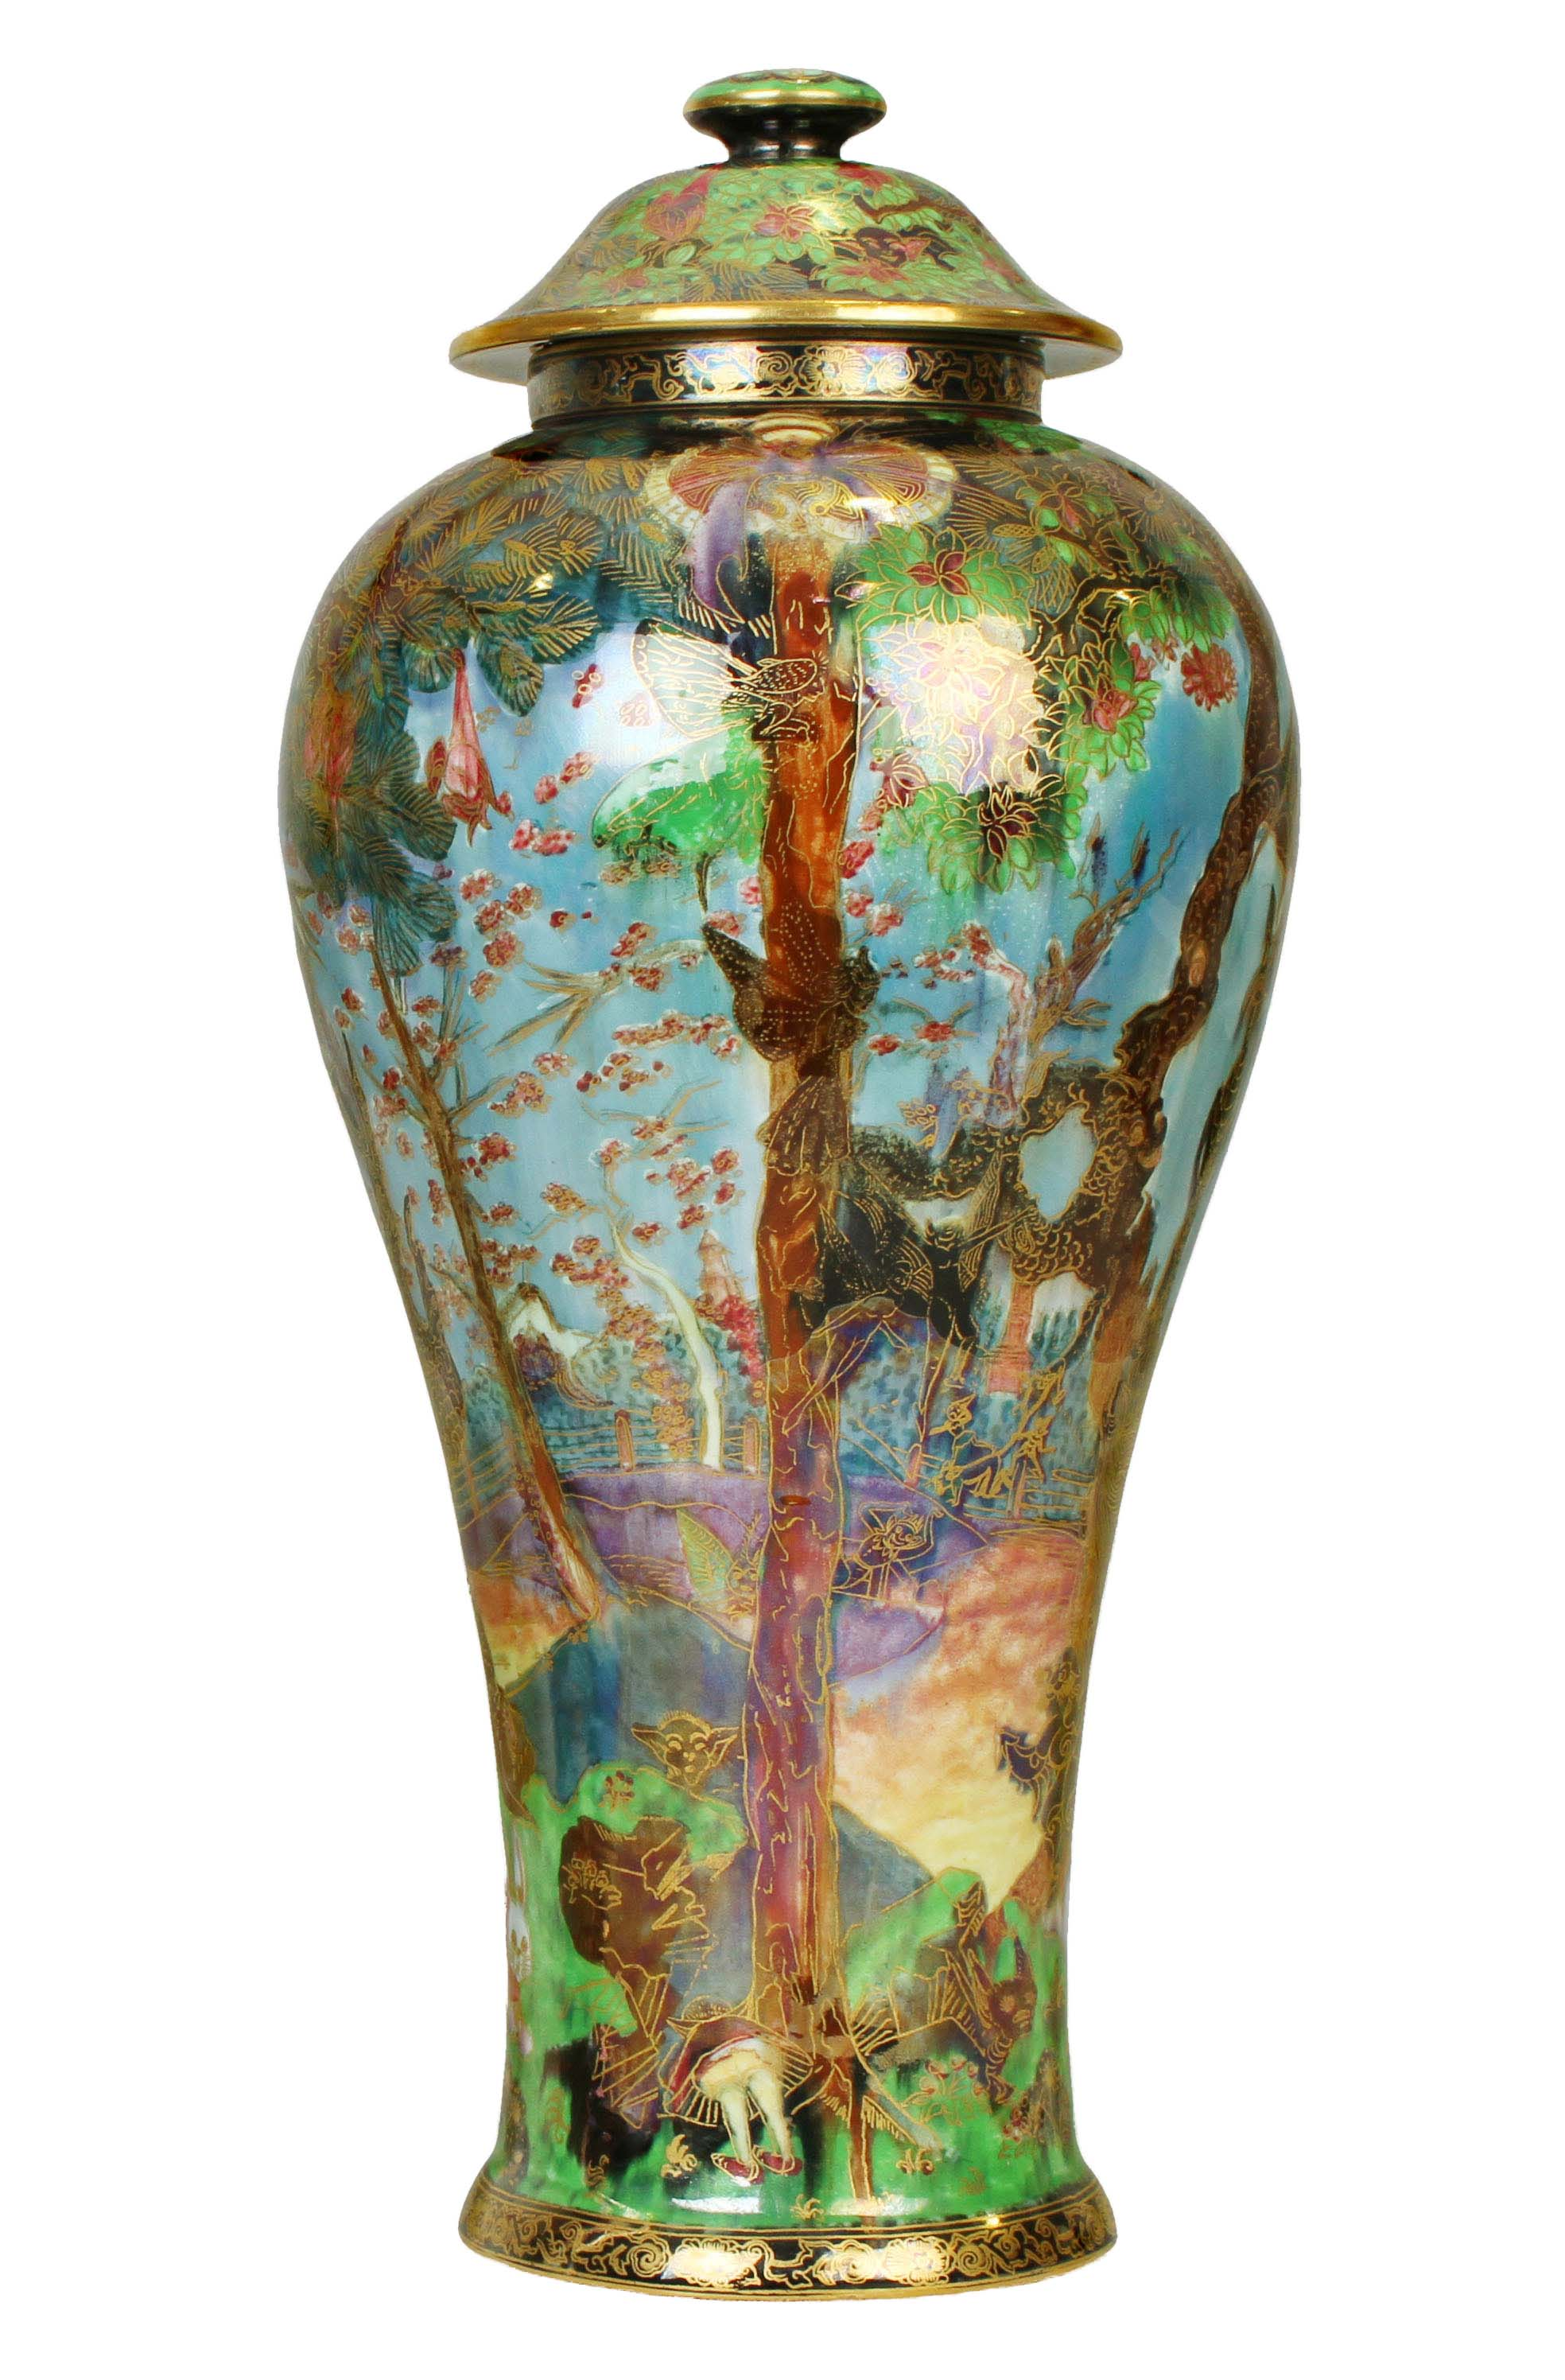 a large Chinese style vase with impressionistic colorful pattern